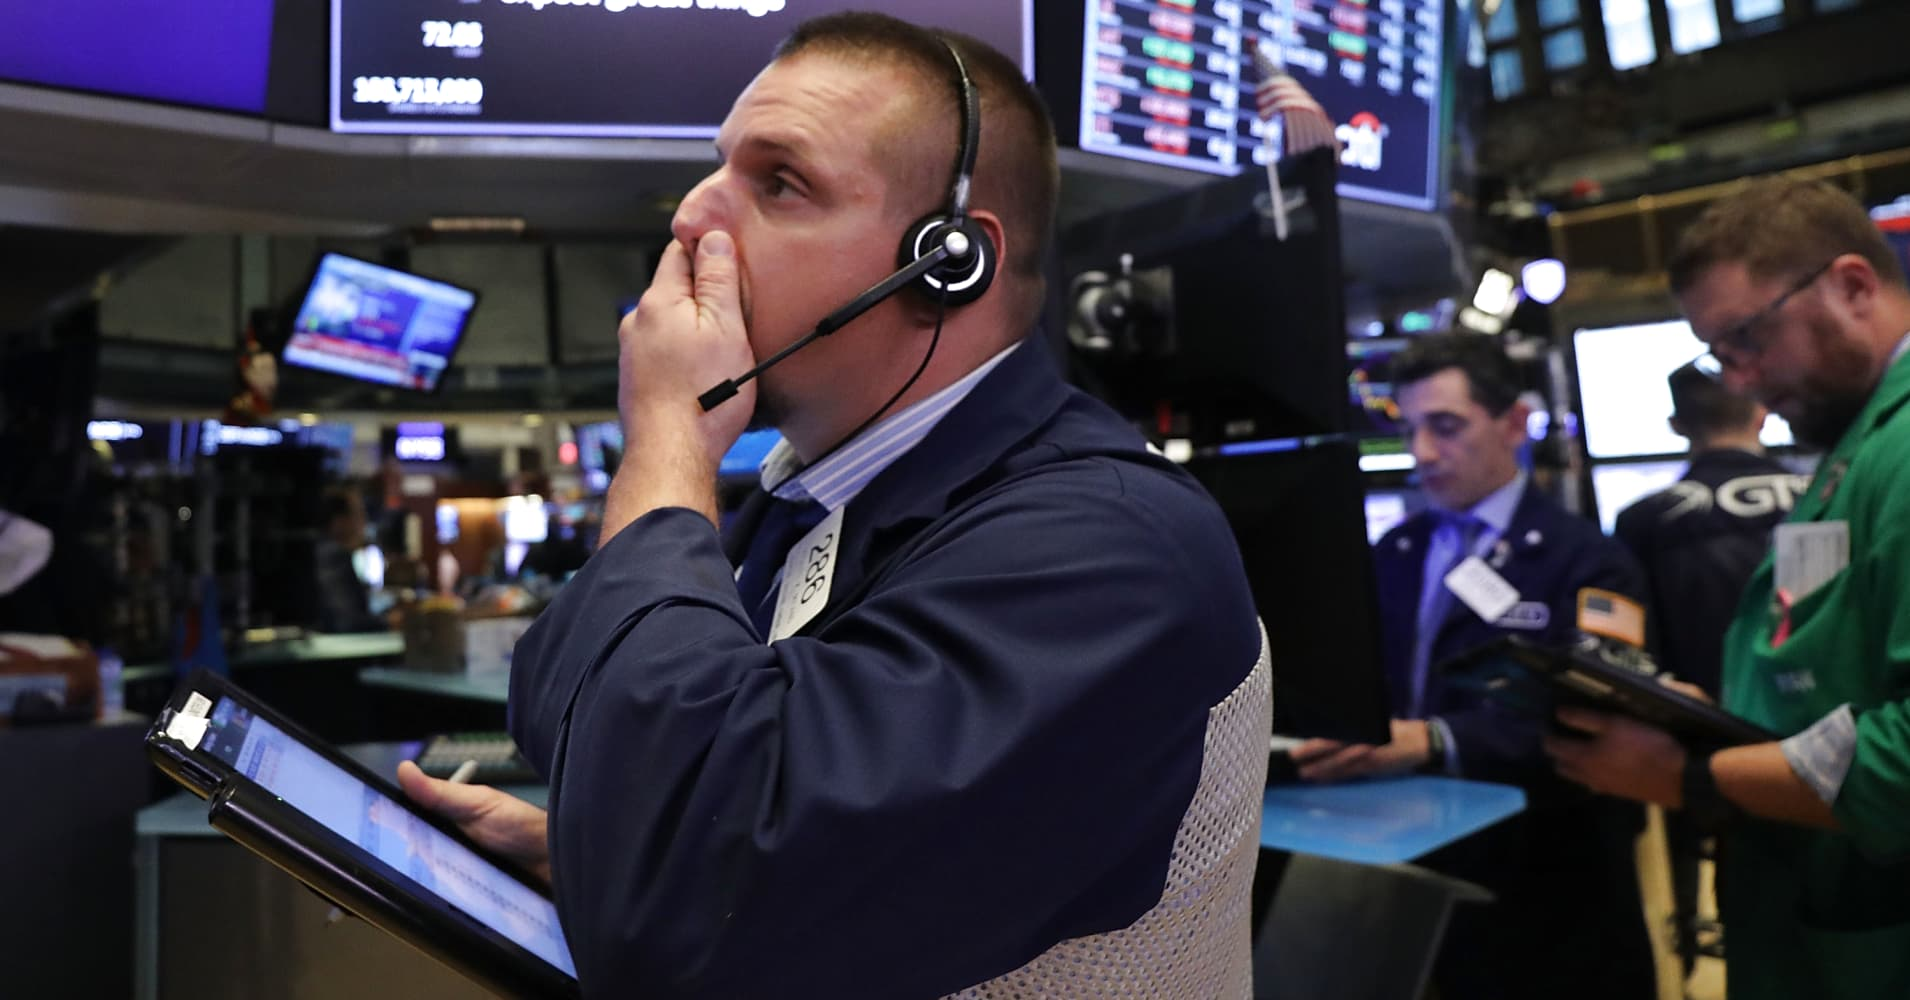 Dow futures point to a 300-point drop as global stock markets continue to slide